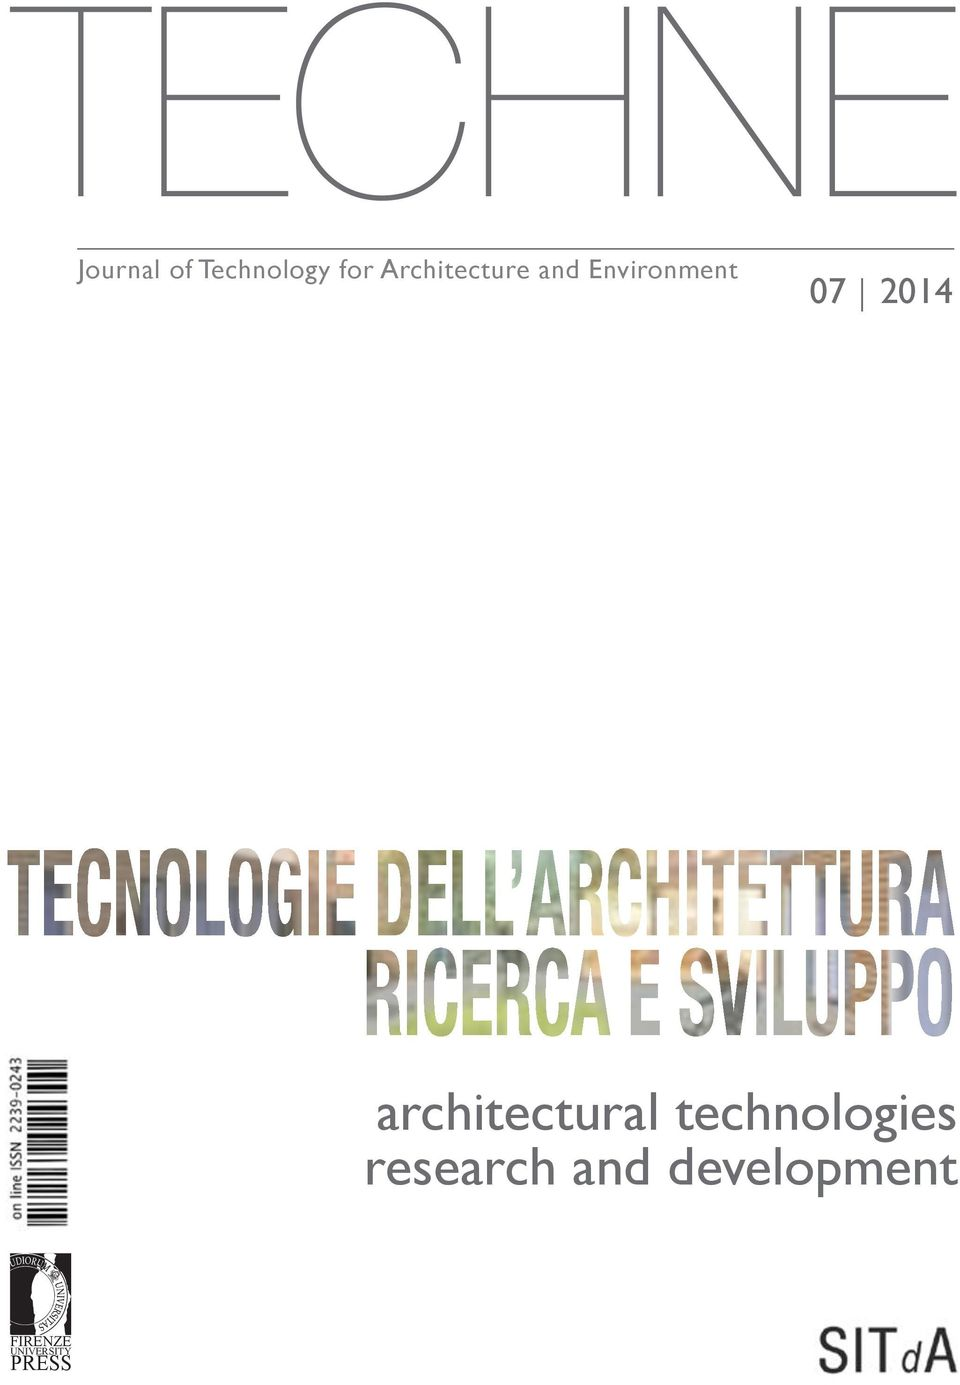 architectural technologies research